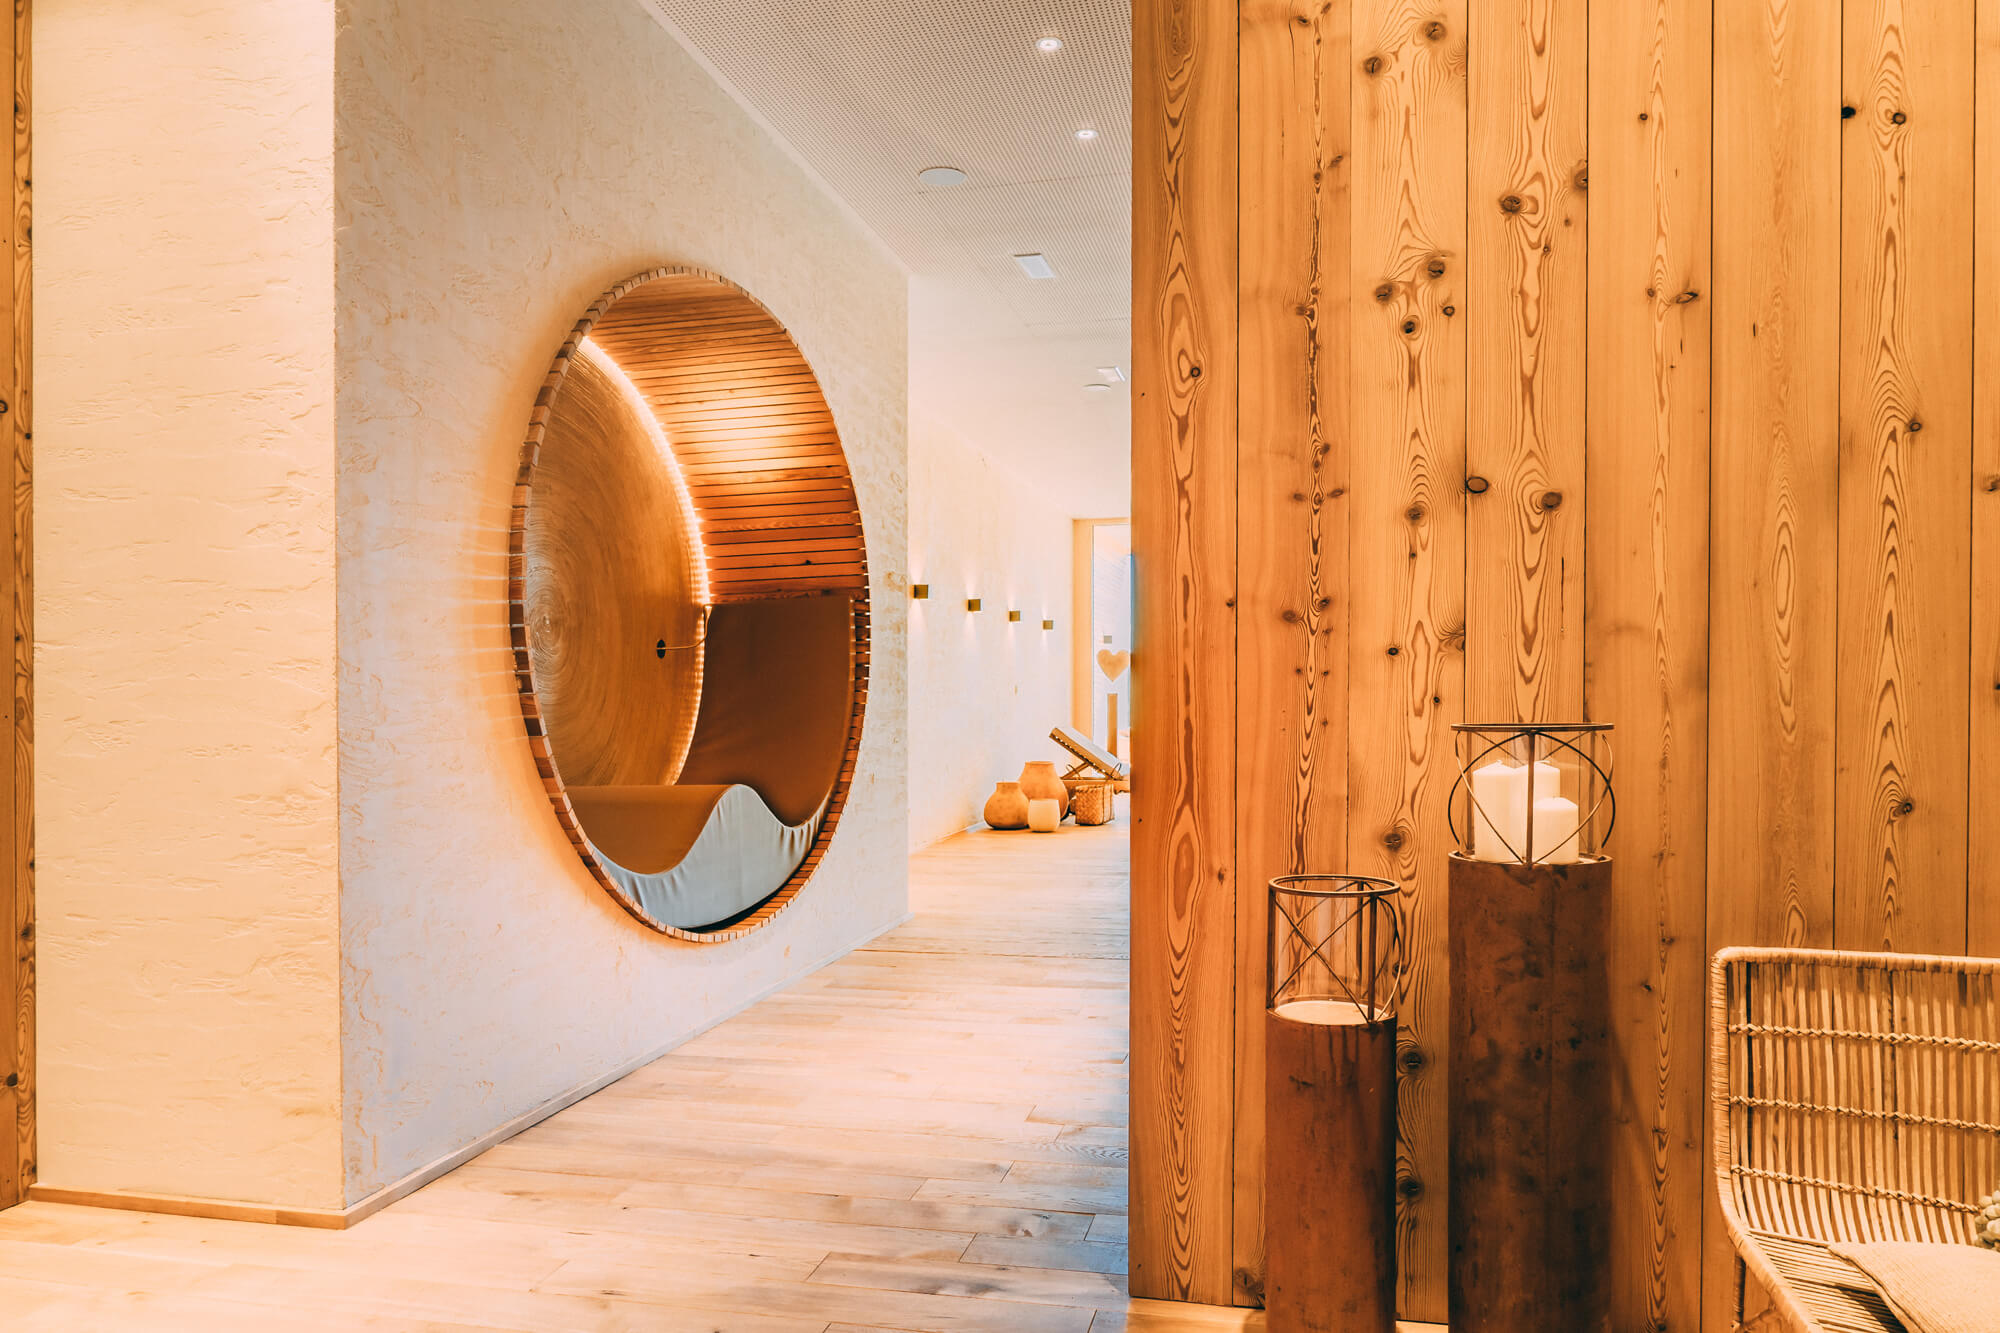 Family SPA and Wellness at Gut Hügle in Ravensburg on Lake Constance